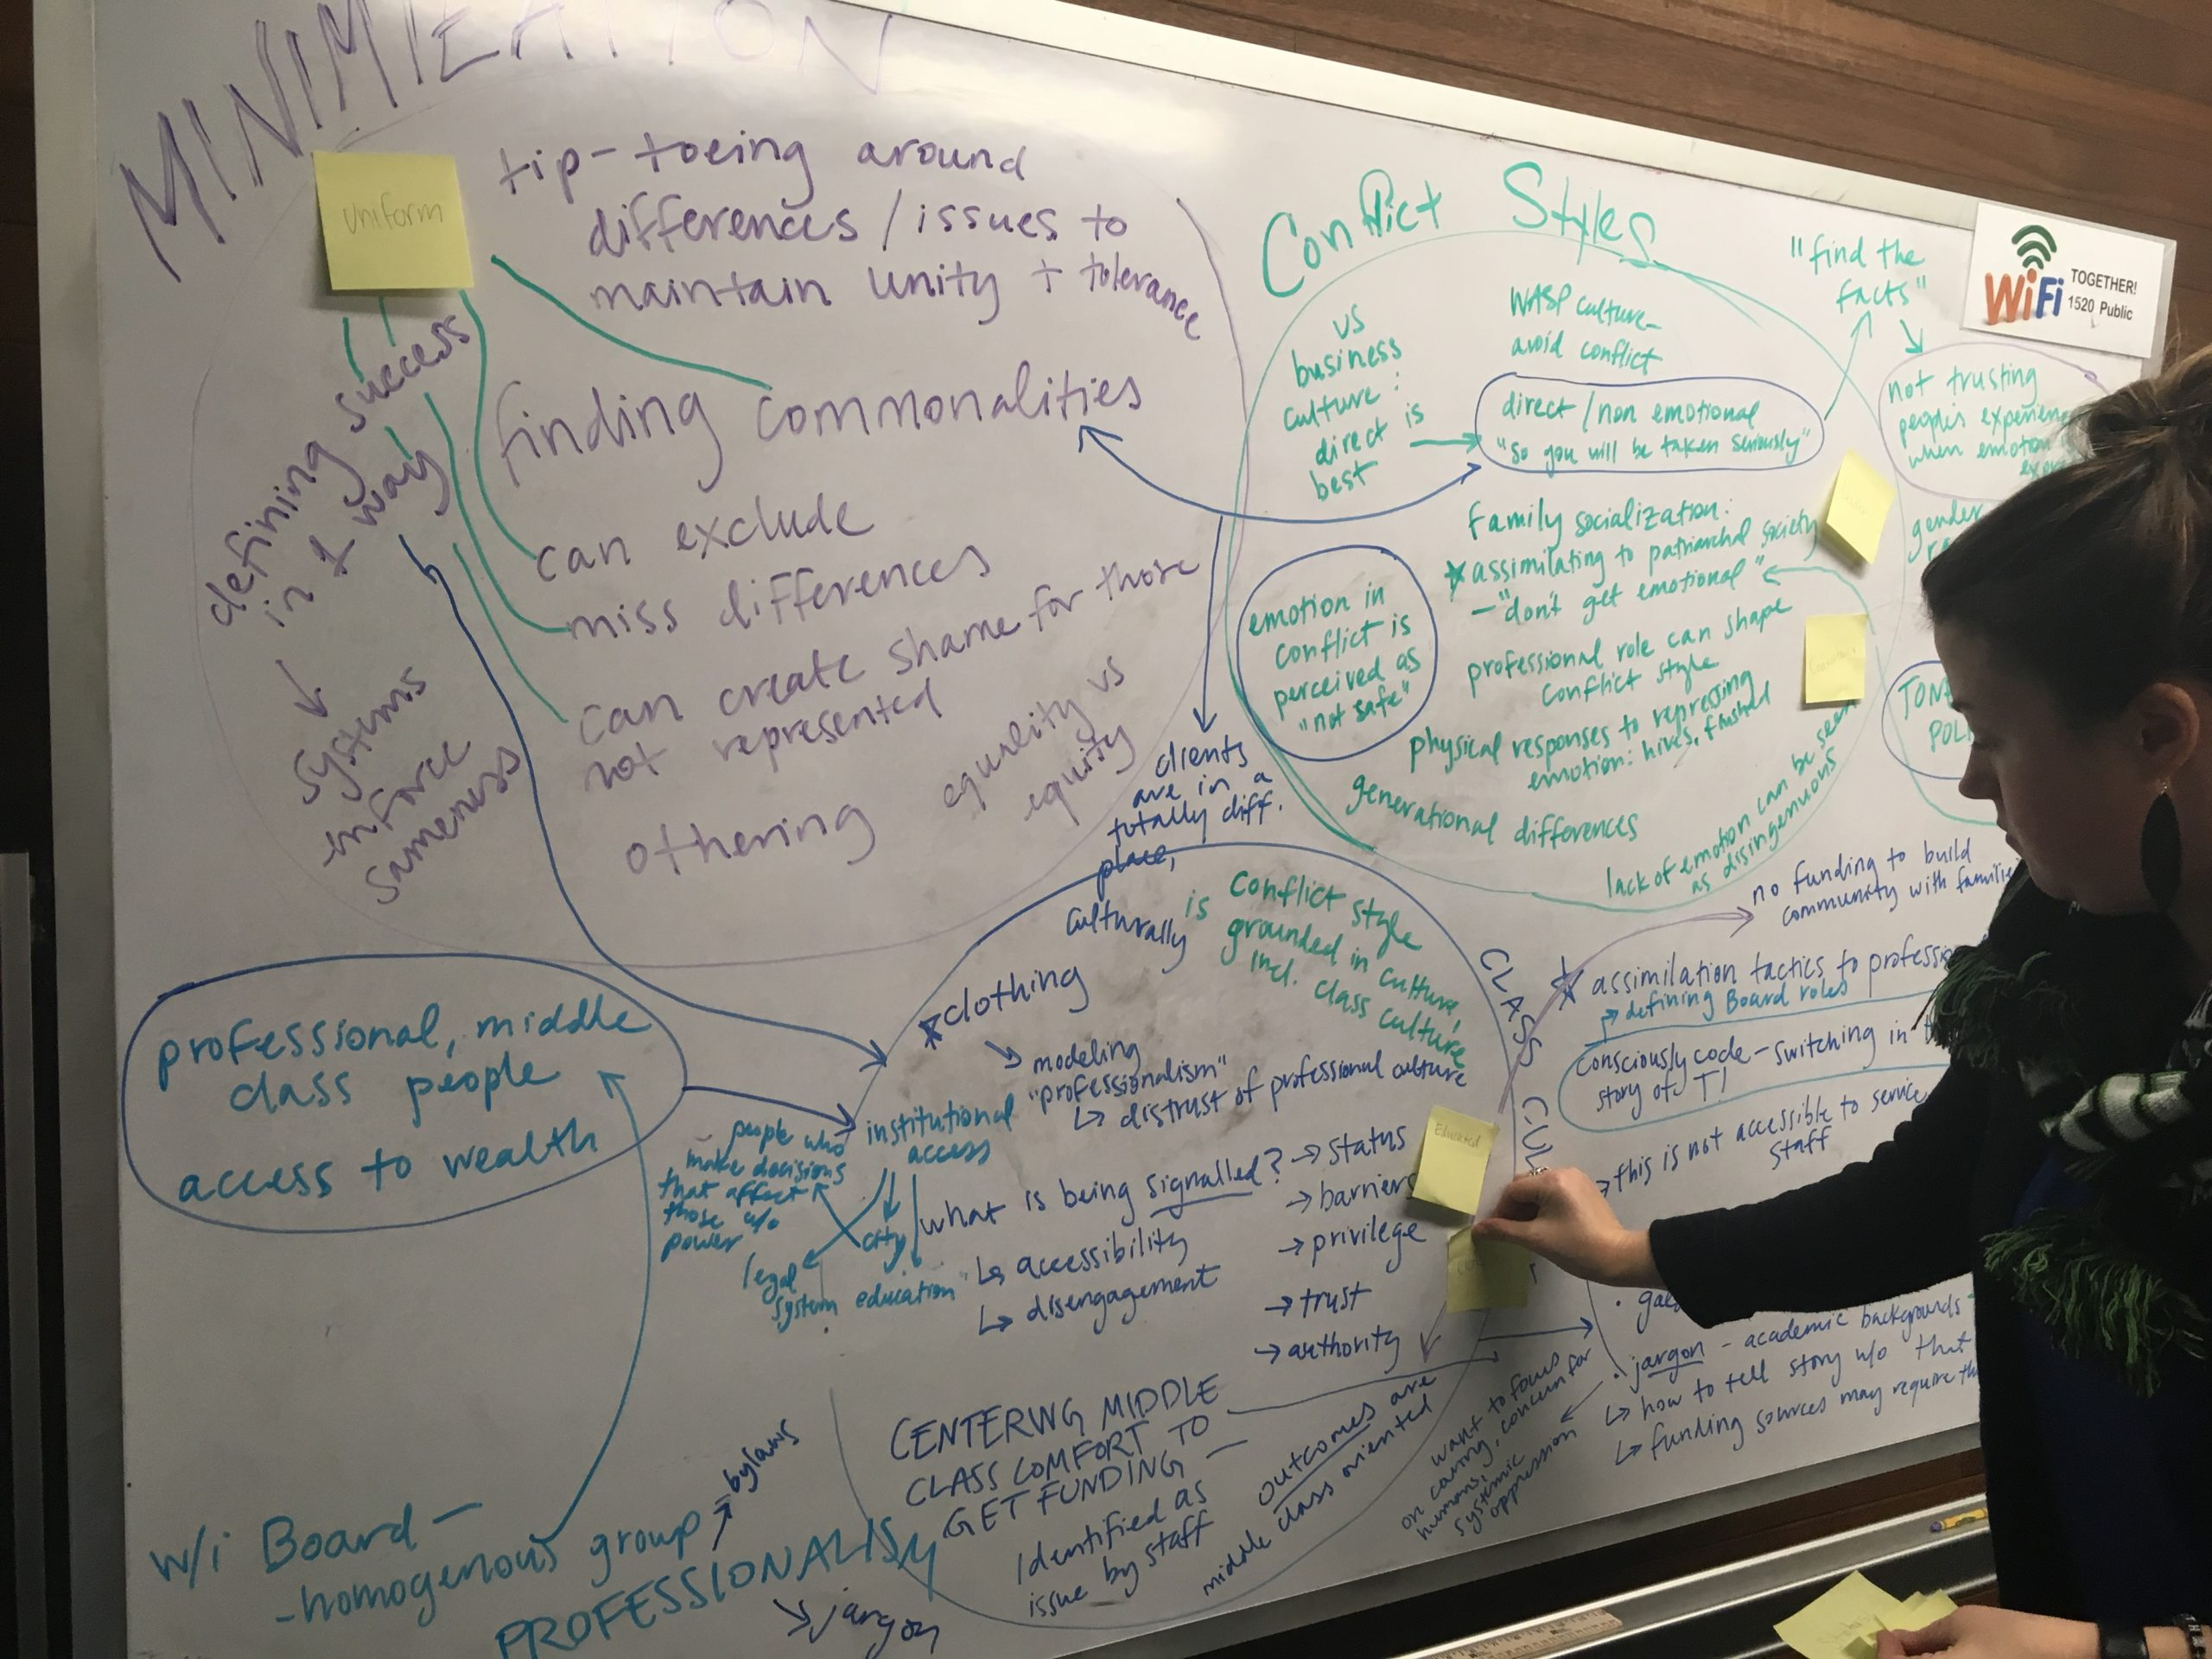 """A woman with a scarf and earrings on places a post-it note on a white board full of writing, with the words """"minimization"""" and """"conflict styles"""" visible."""